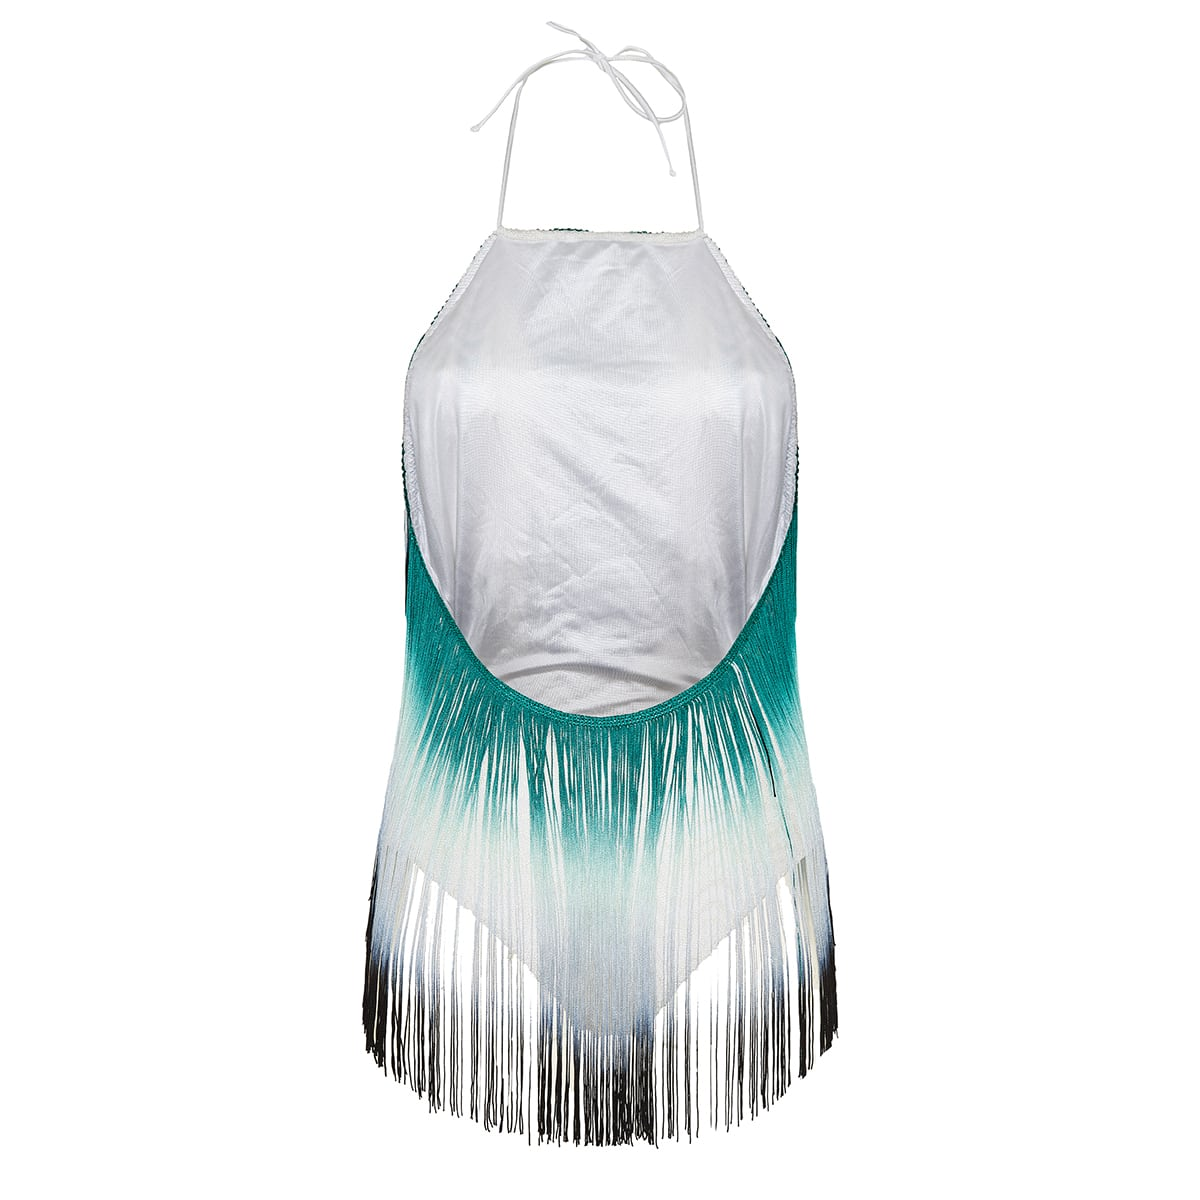 Fringed knitted swimsuit